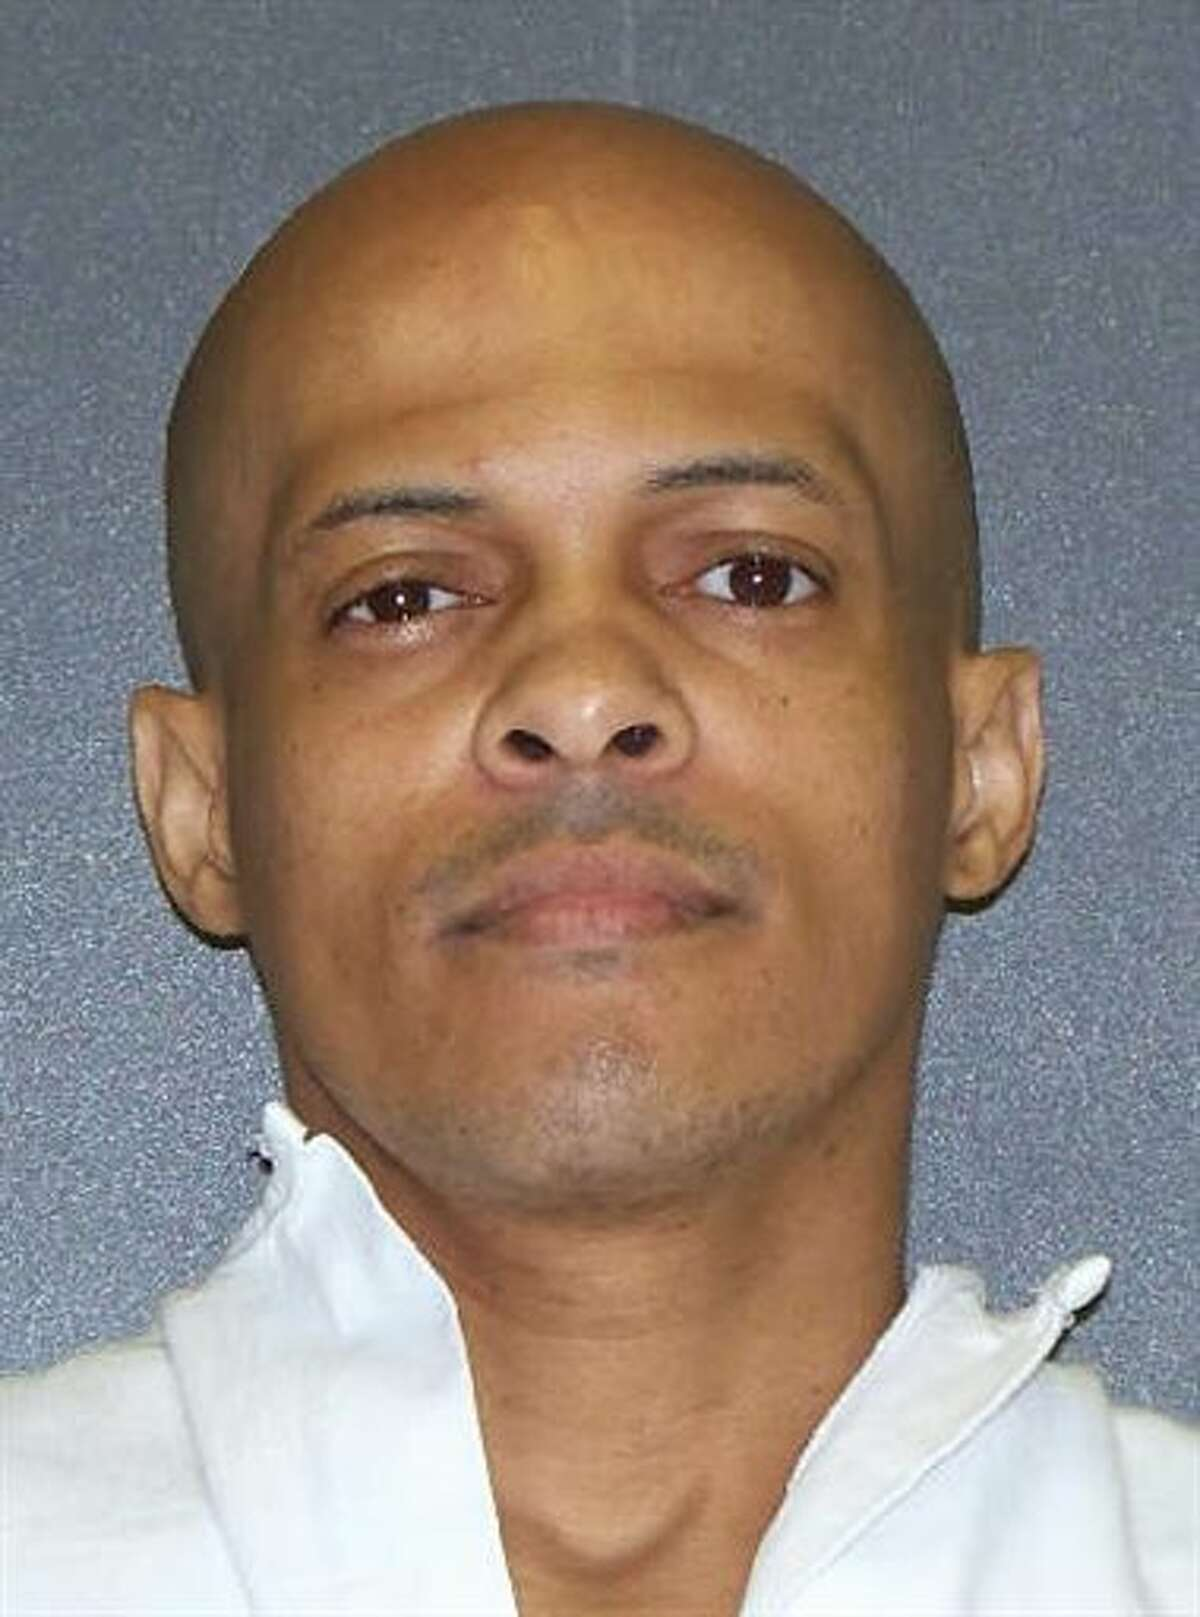 This handout photo provided by the Texas Department of Criminal Justice shows Robert Campbell. Attorneys for the Texas death row inmate have filed a federal civil rights lawsuit seeking to delay his execution following a bungled execution in Oklahoma. Campbell's execution is scheduled for May 13, 2014. (AP Photo/Texas Department of Criminal Justice)